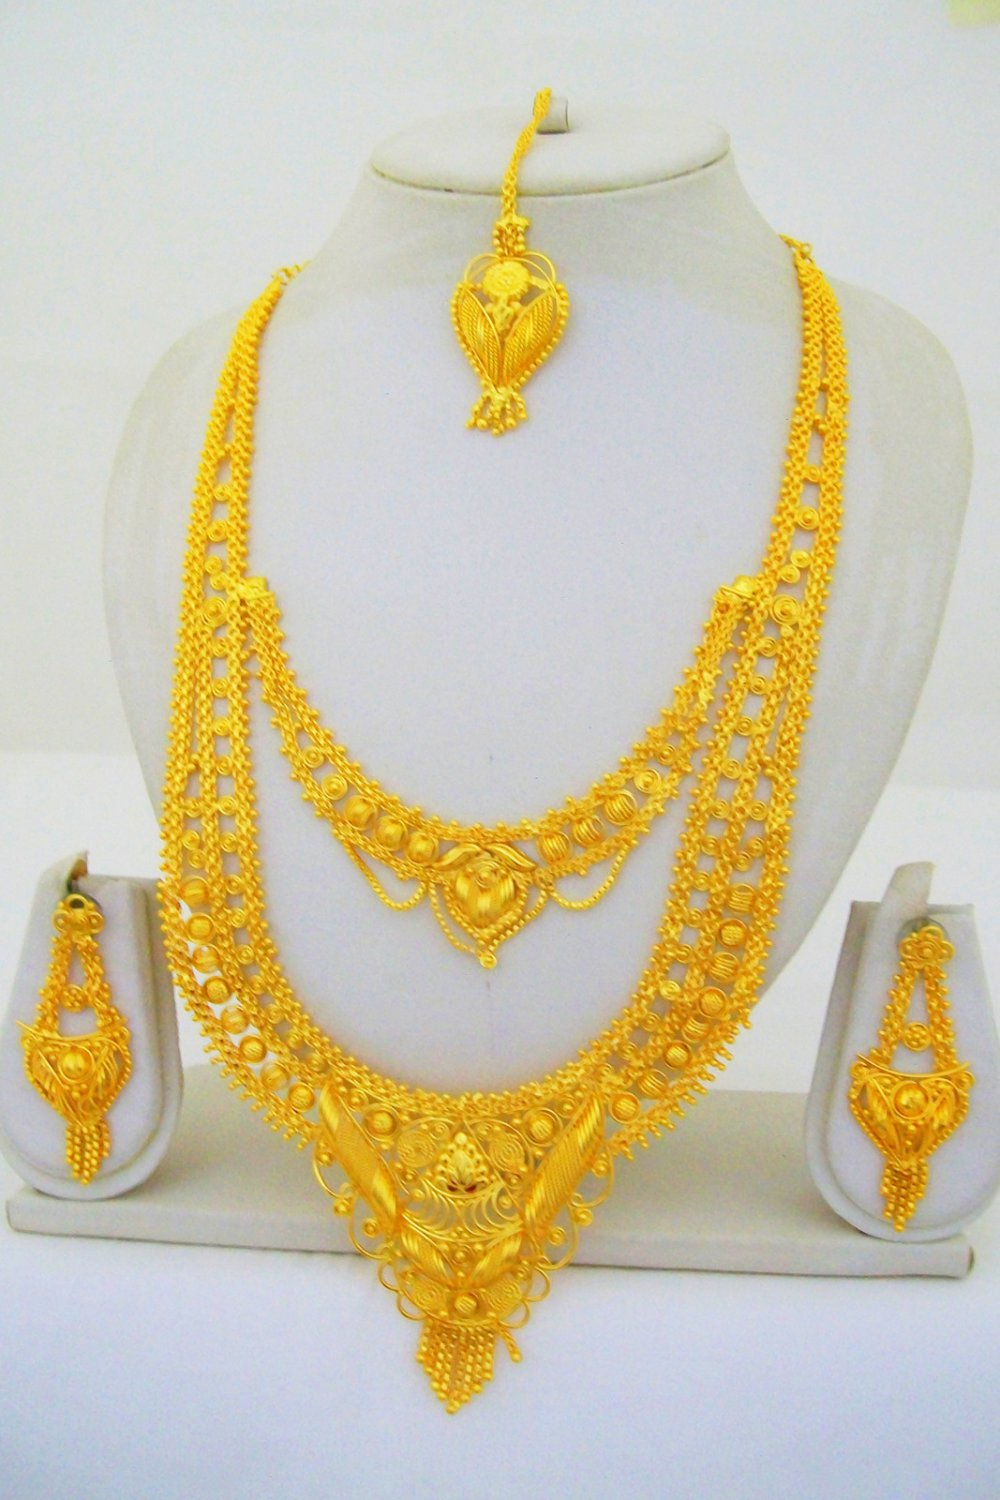 Gold Plated Indian Rani Haar Necklace Long Filigree Layered Vintage Jewelry Set